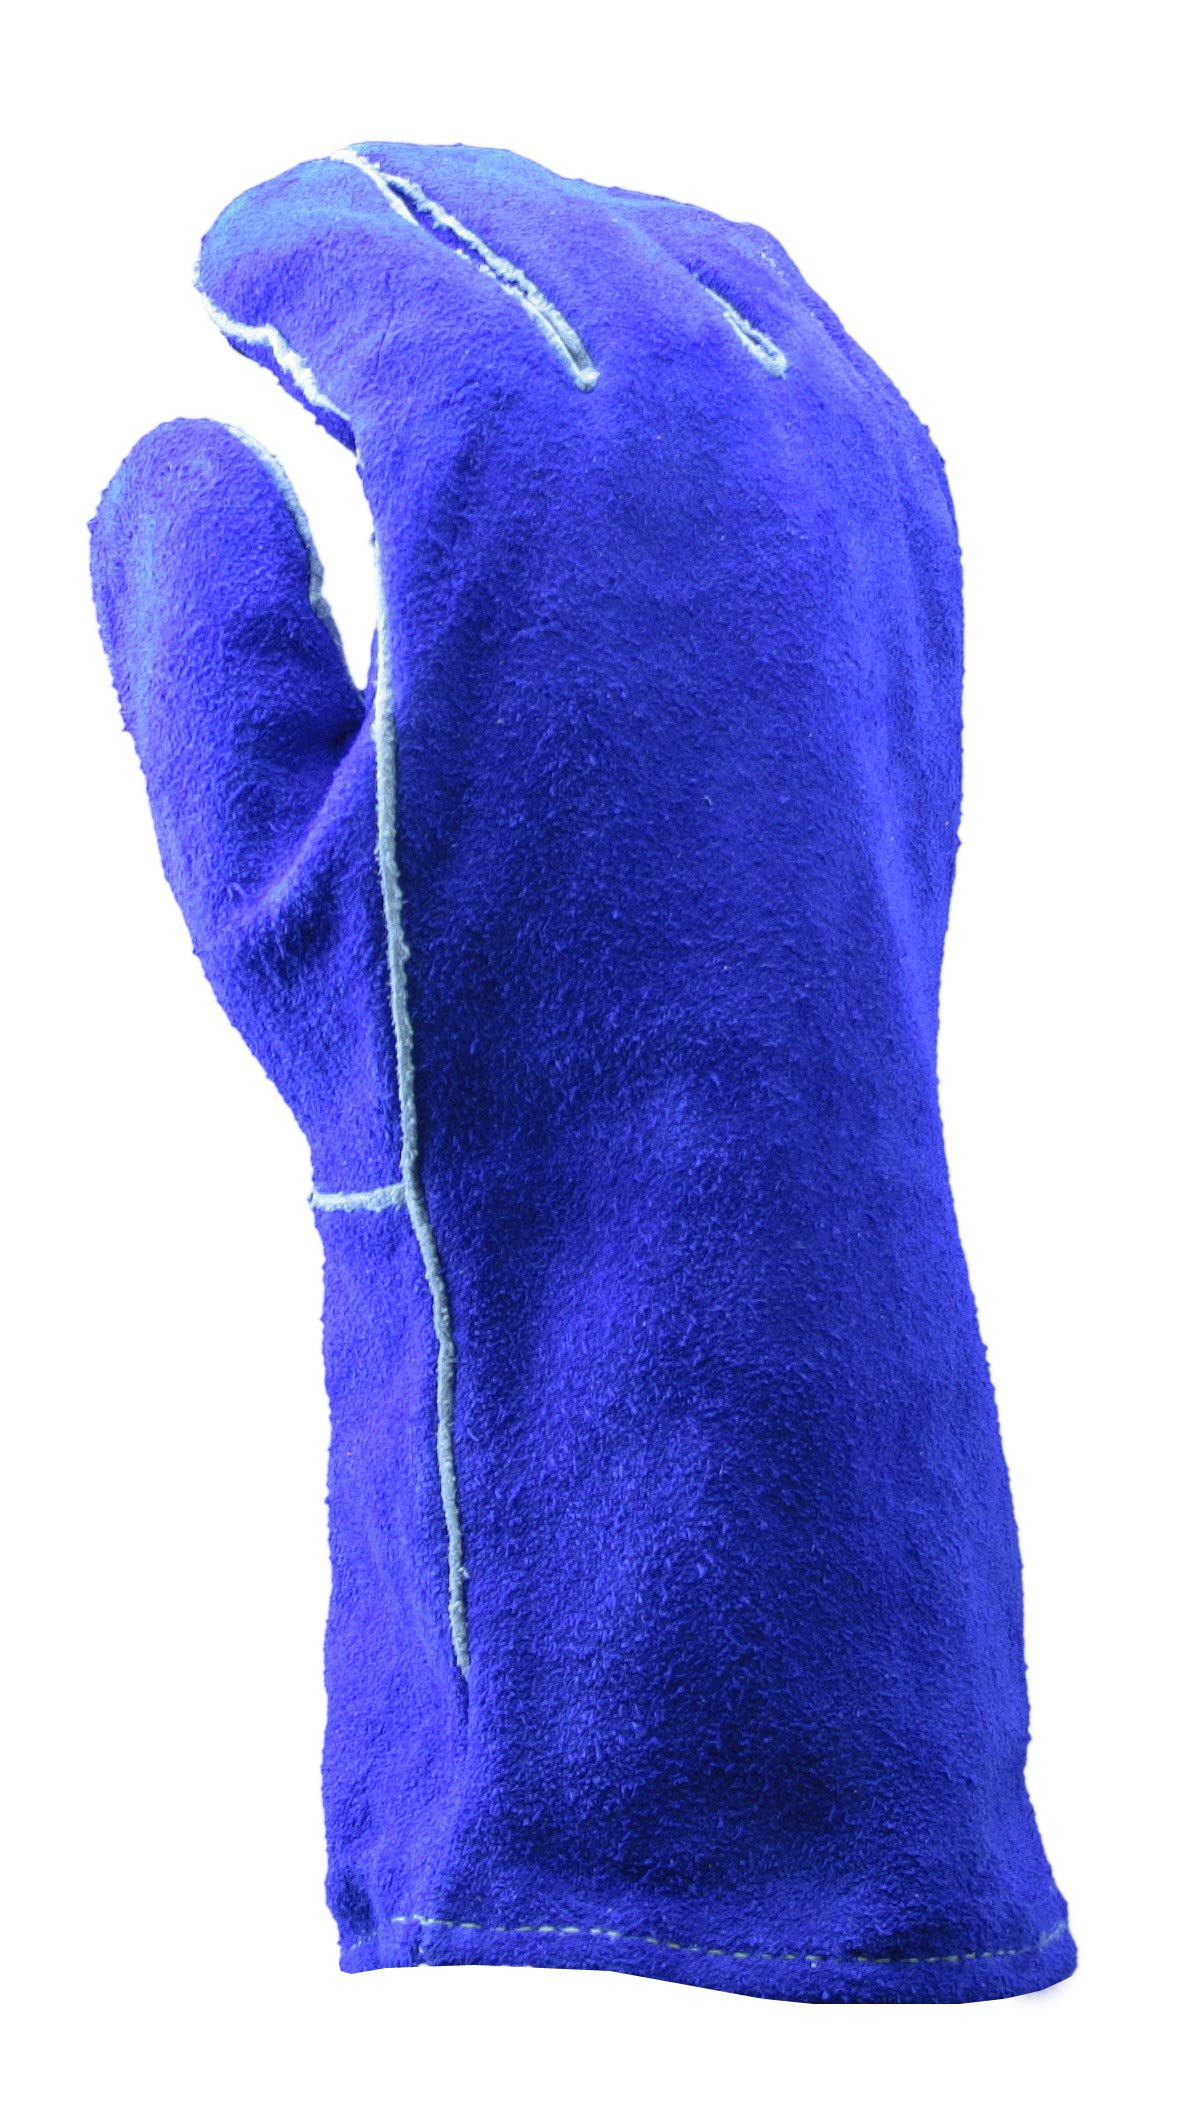 Blue Premium Leather Welders Gloves | Slip On Cuff, 14'' Length, Cotton/Foam Lining, Welted Seam, Kevlar Stitching Material - Small (Pack of 12) by Stauffer Glove & Safety (Image #3)